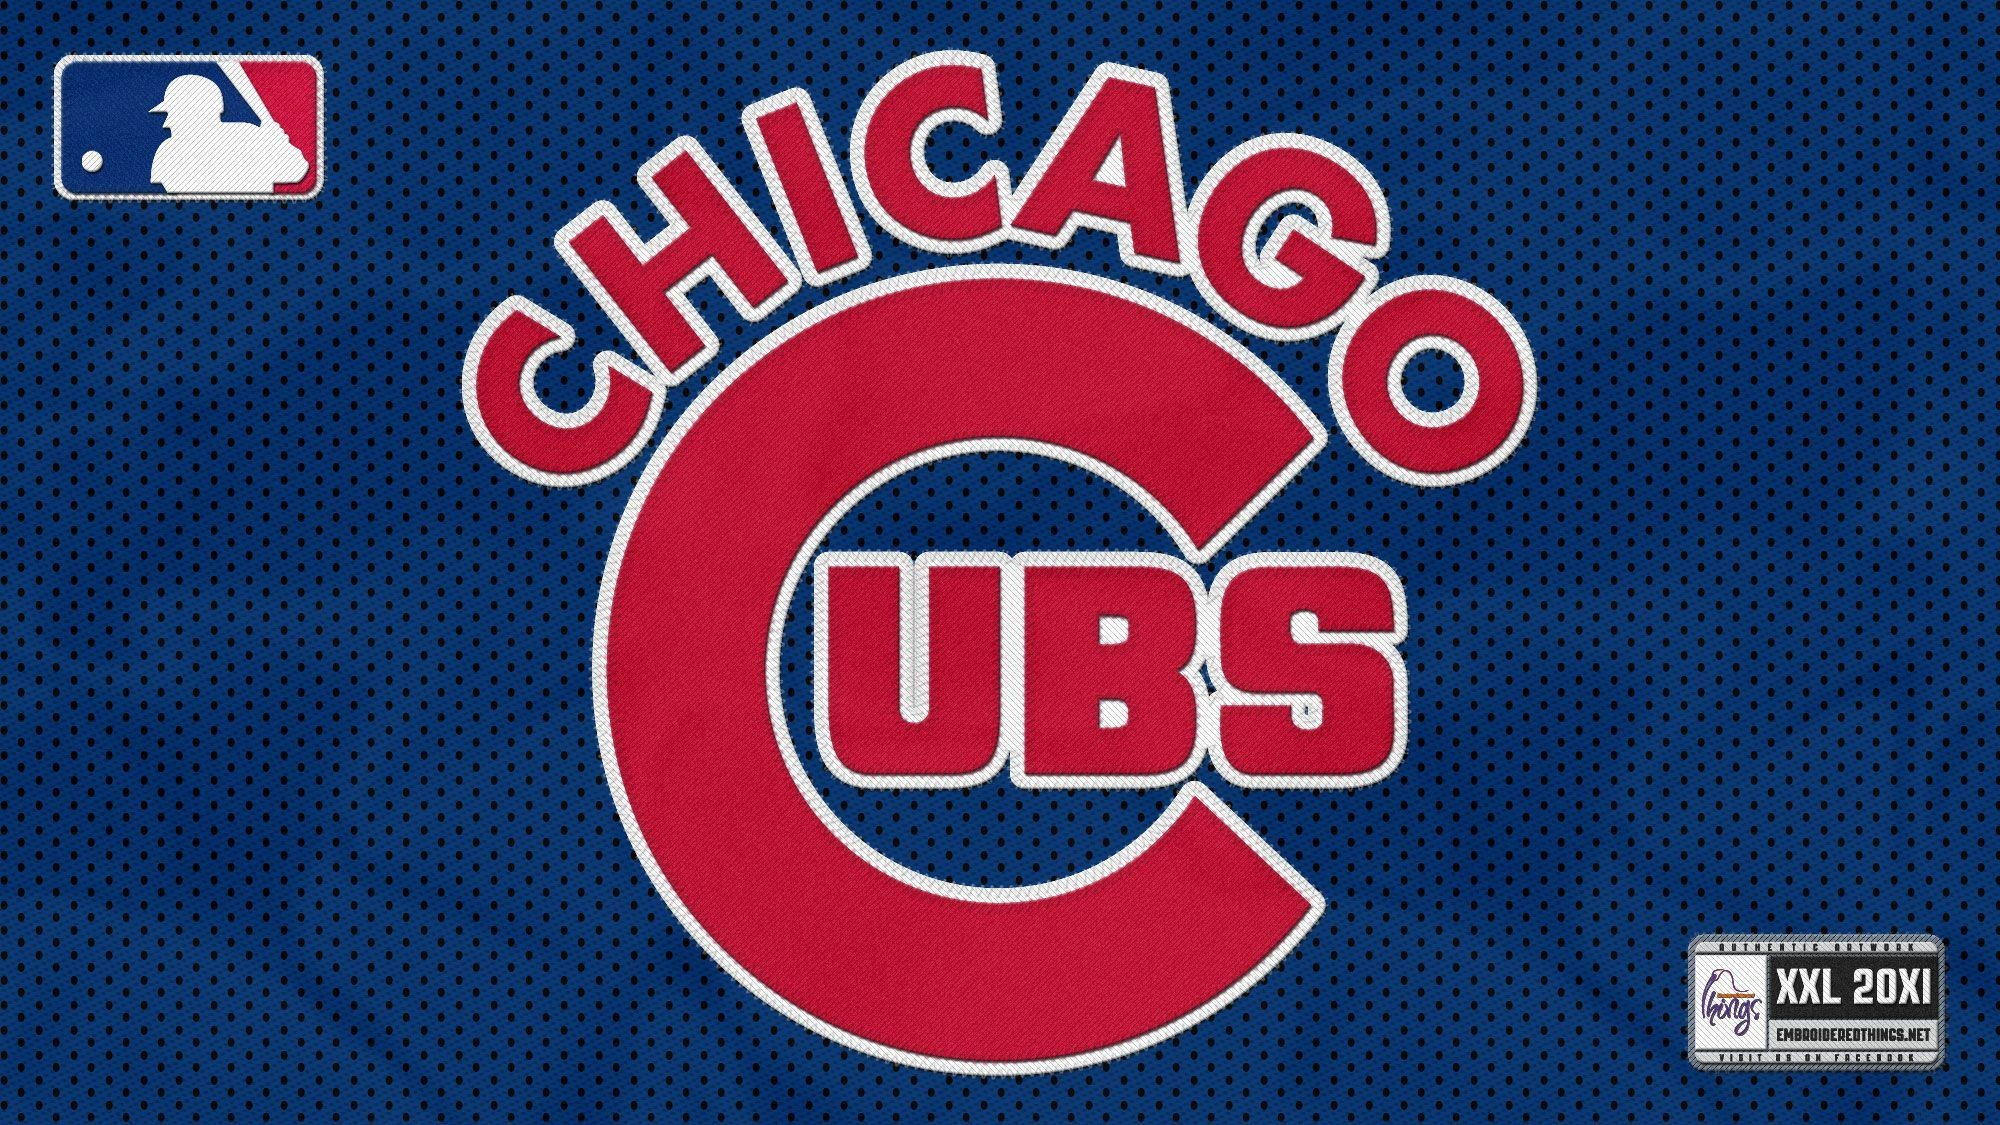 The curse is over — Chicago Cubs are the 2016 World Series champions